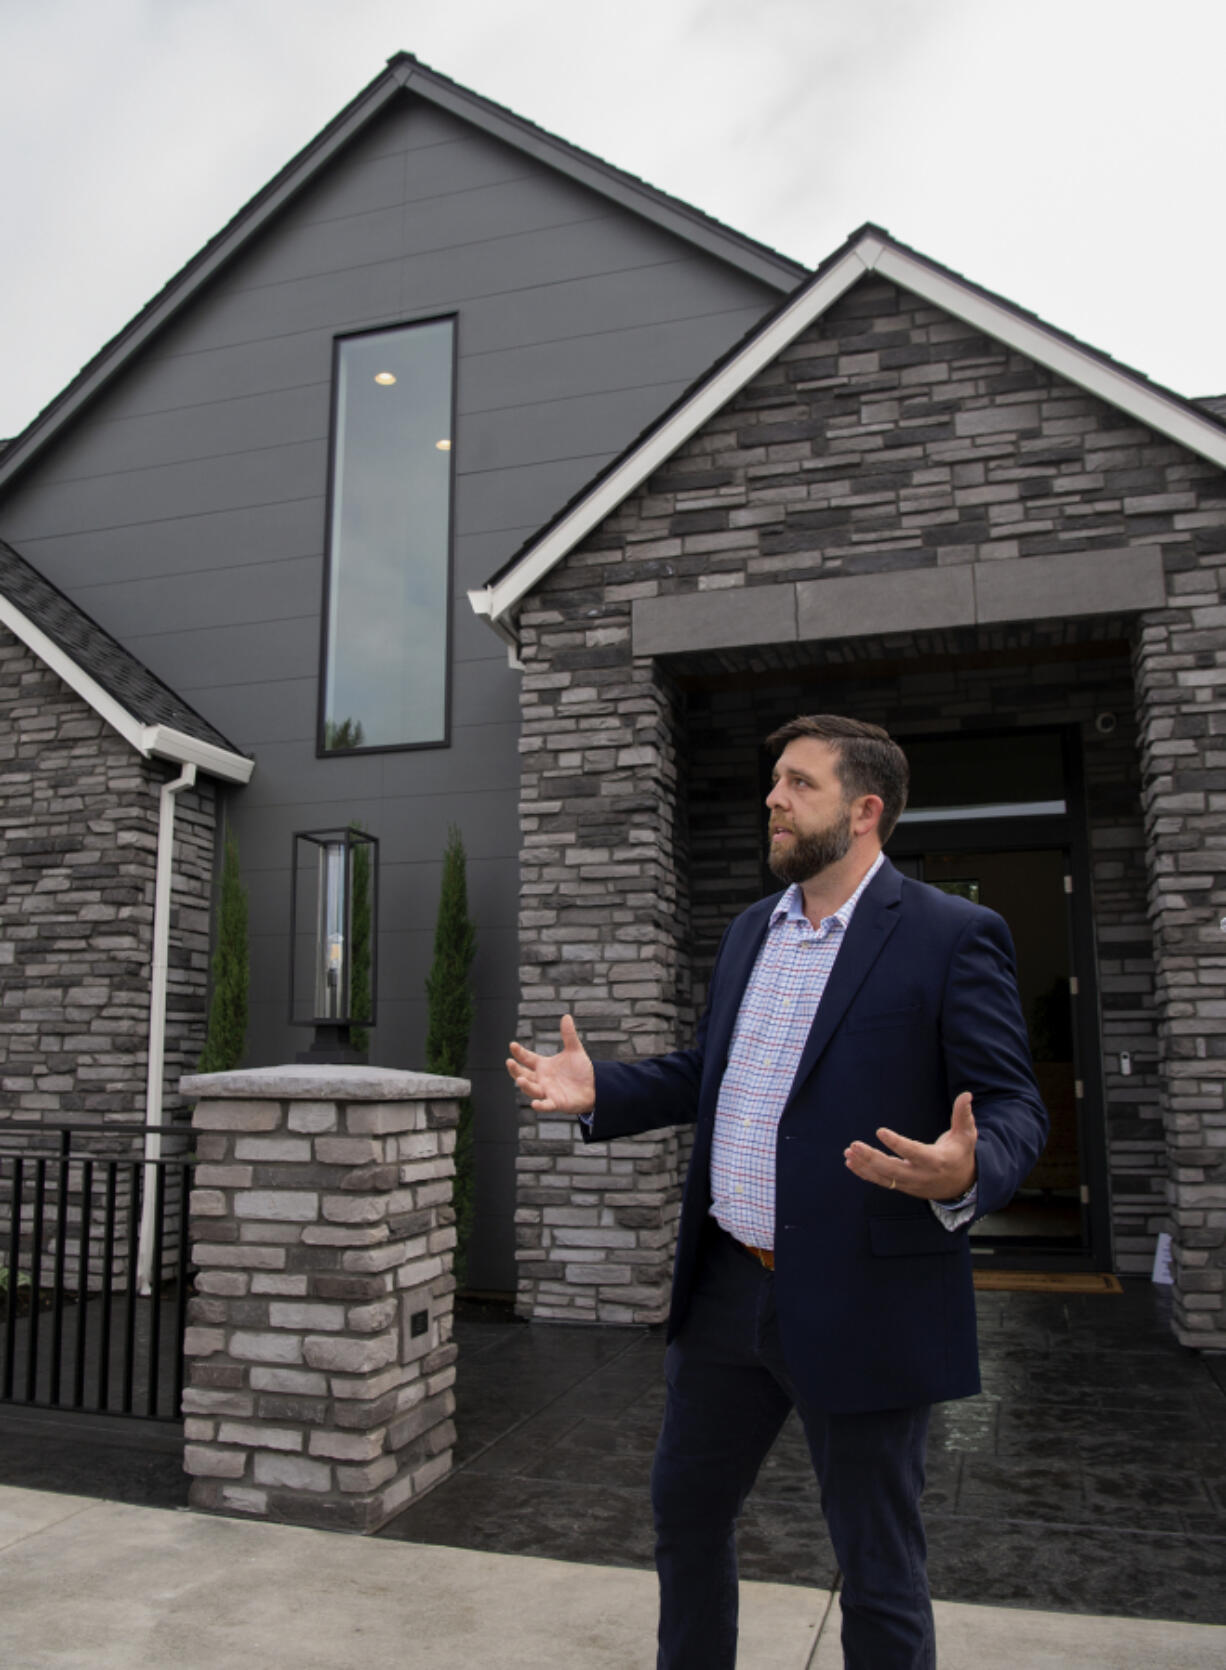 Russell Mistich, a James Hardie new product commercialization manager, discusses the new siding present on multiple homes at the Northwest Natural Parade of Homes on Wednesday.